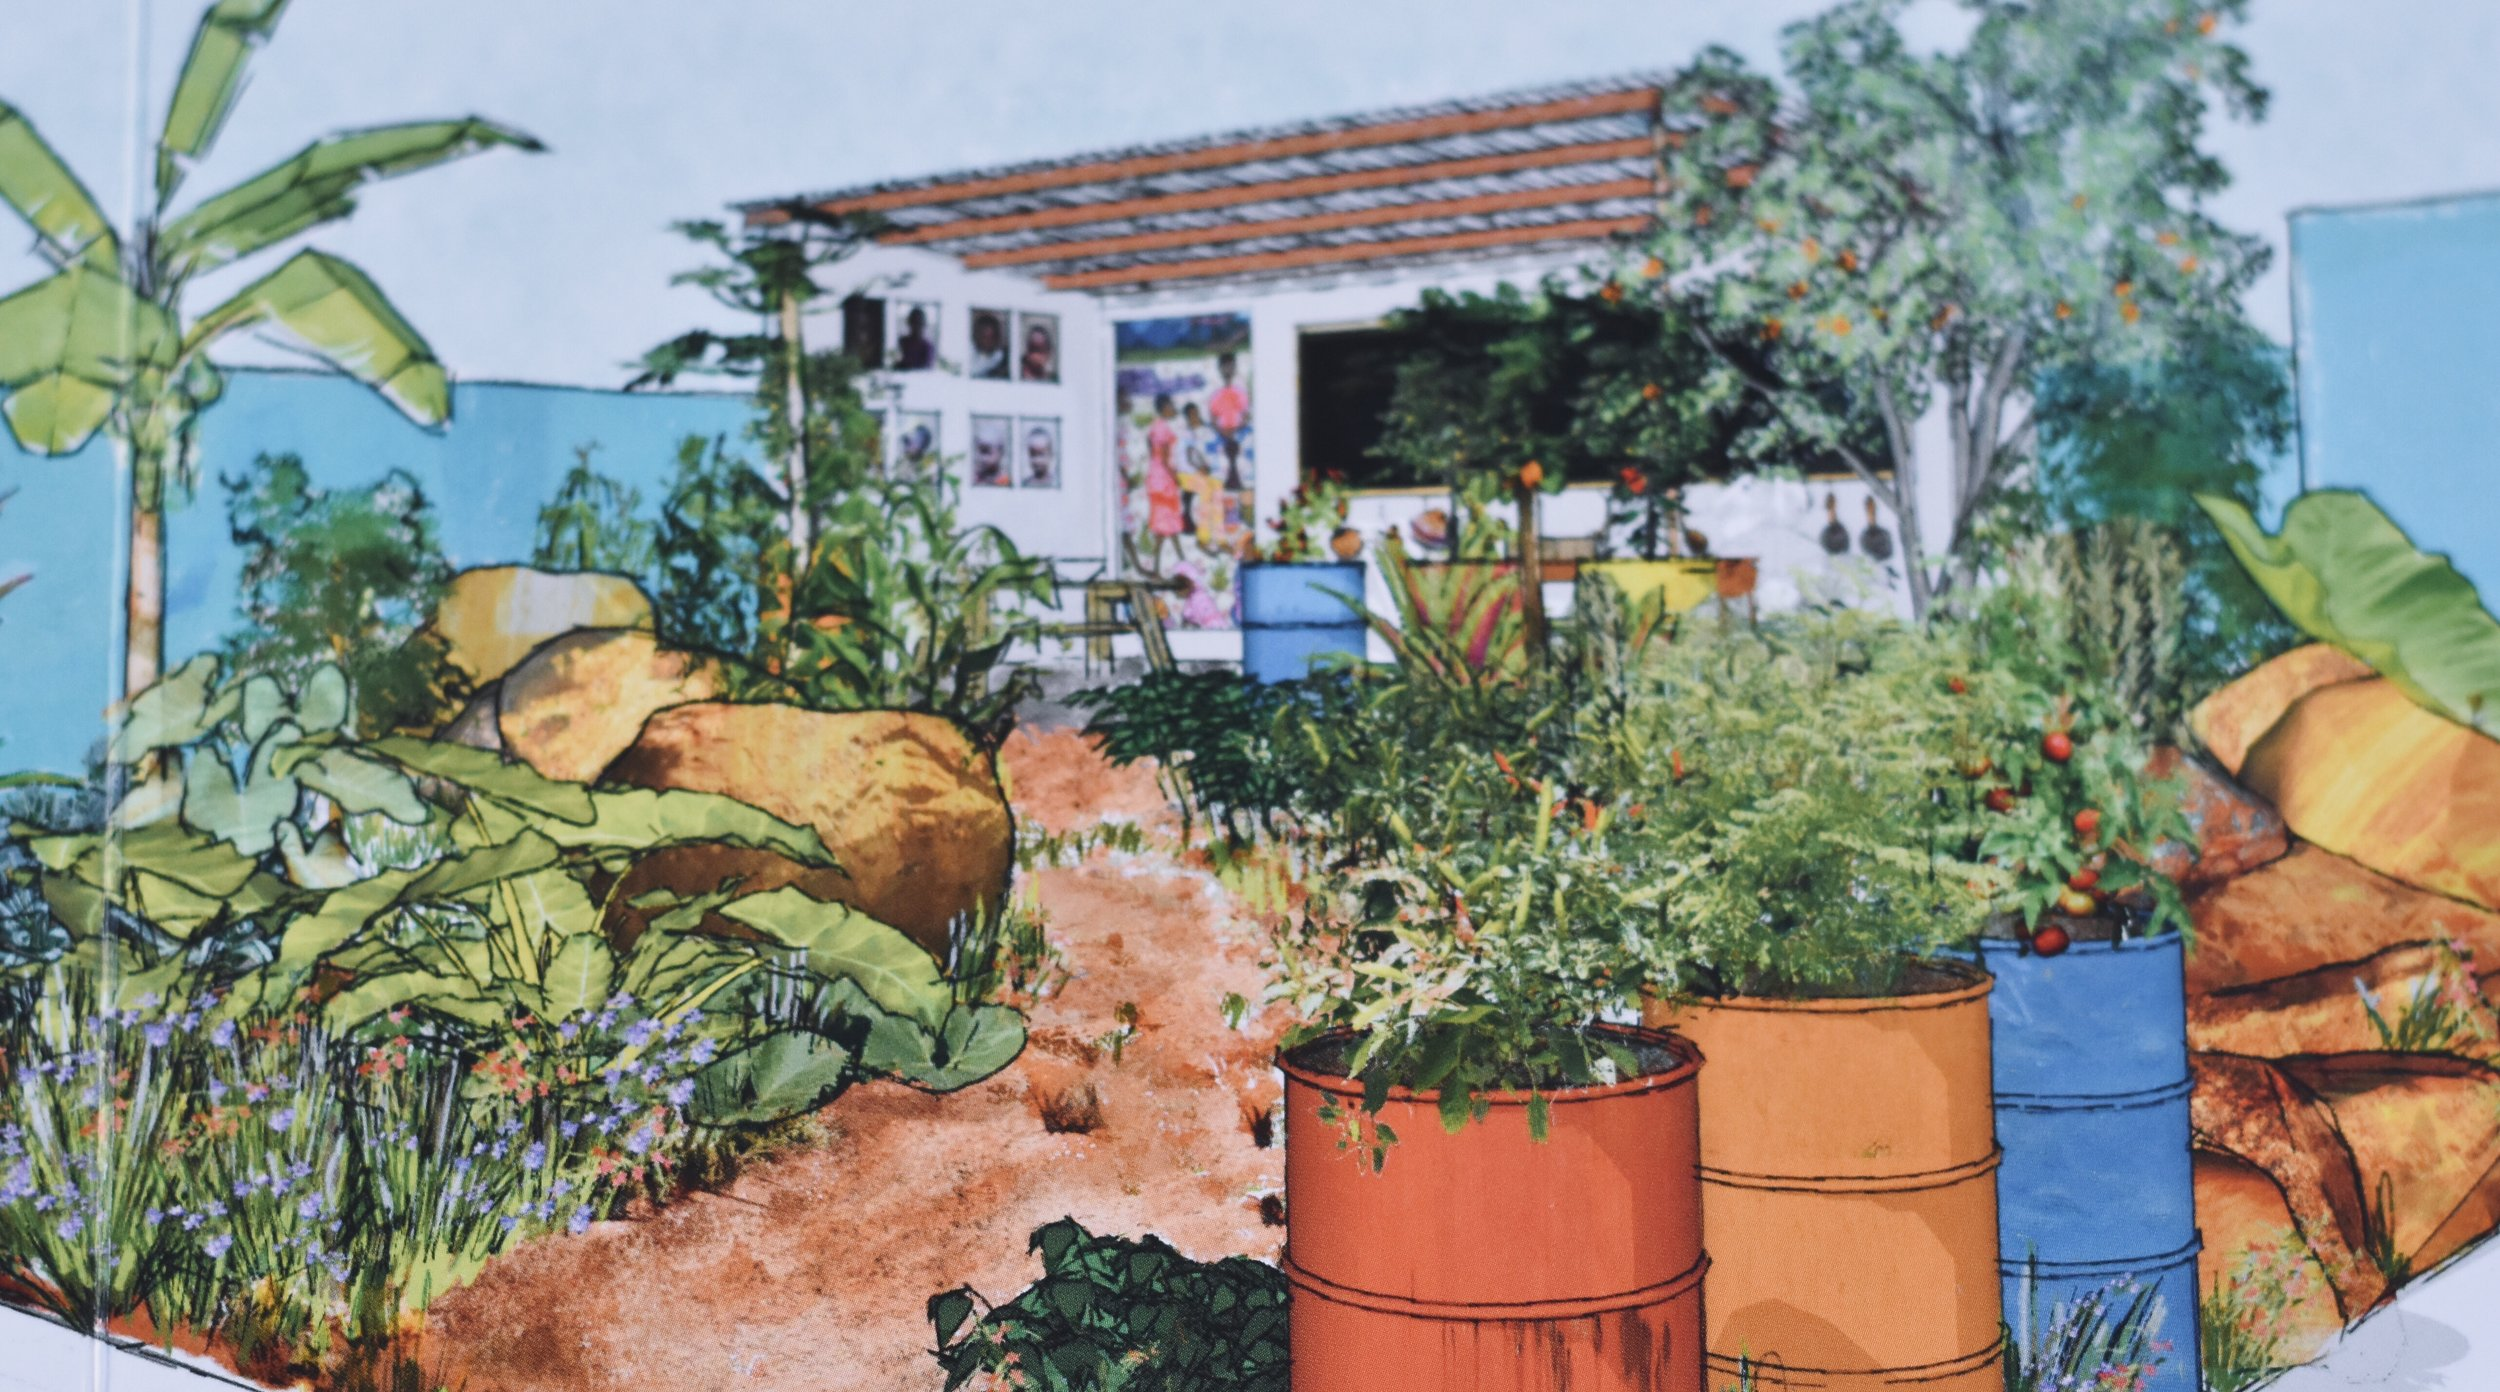 An Artist's impression of the CAMFED garden showing the classroom at the back.